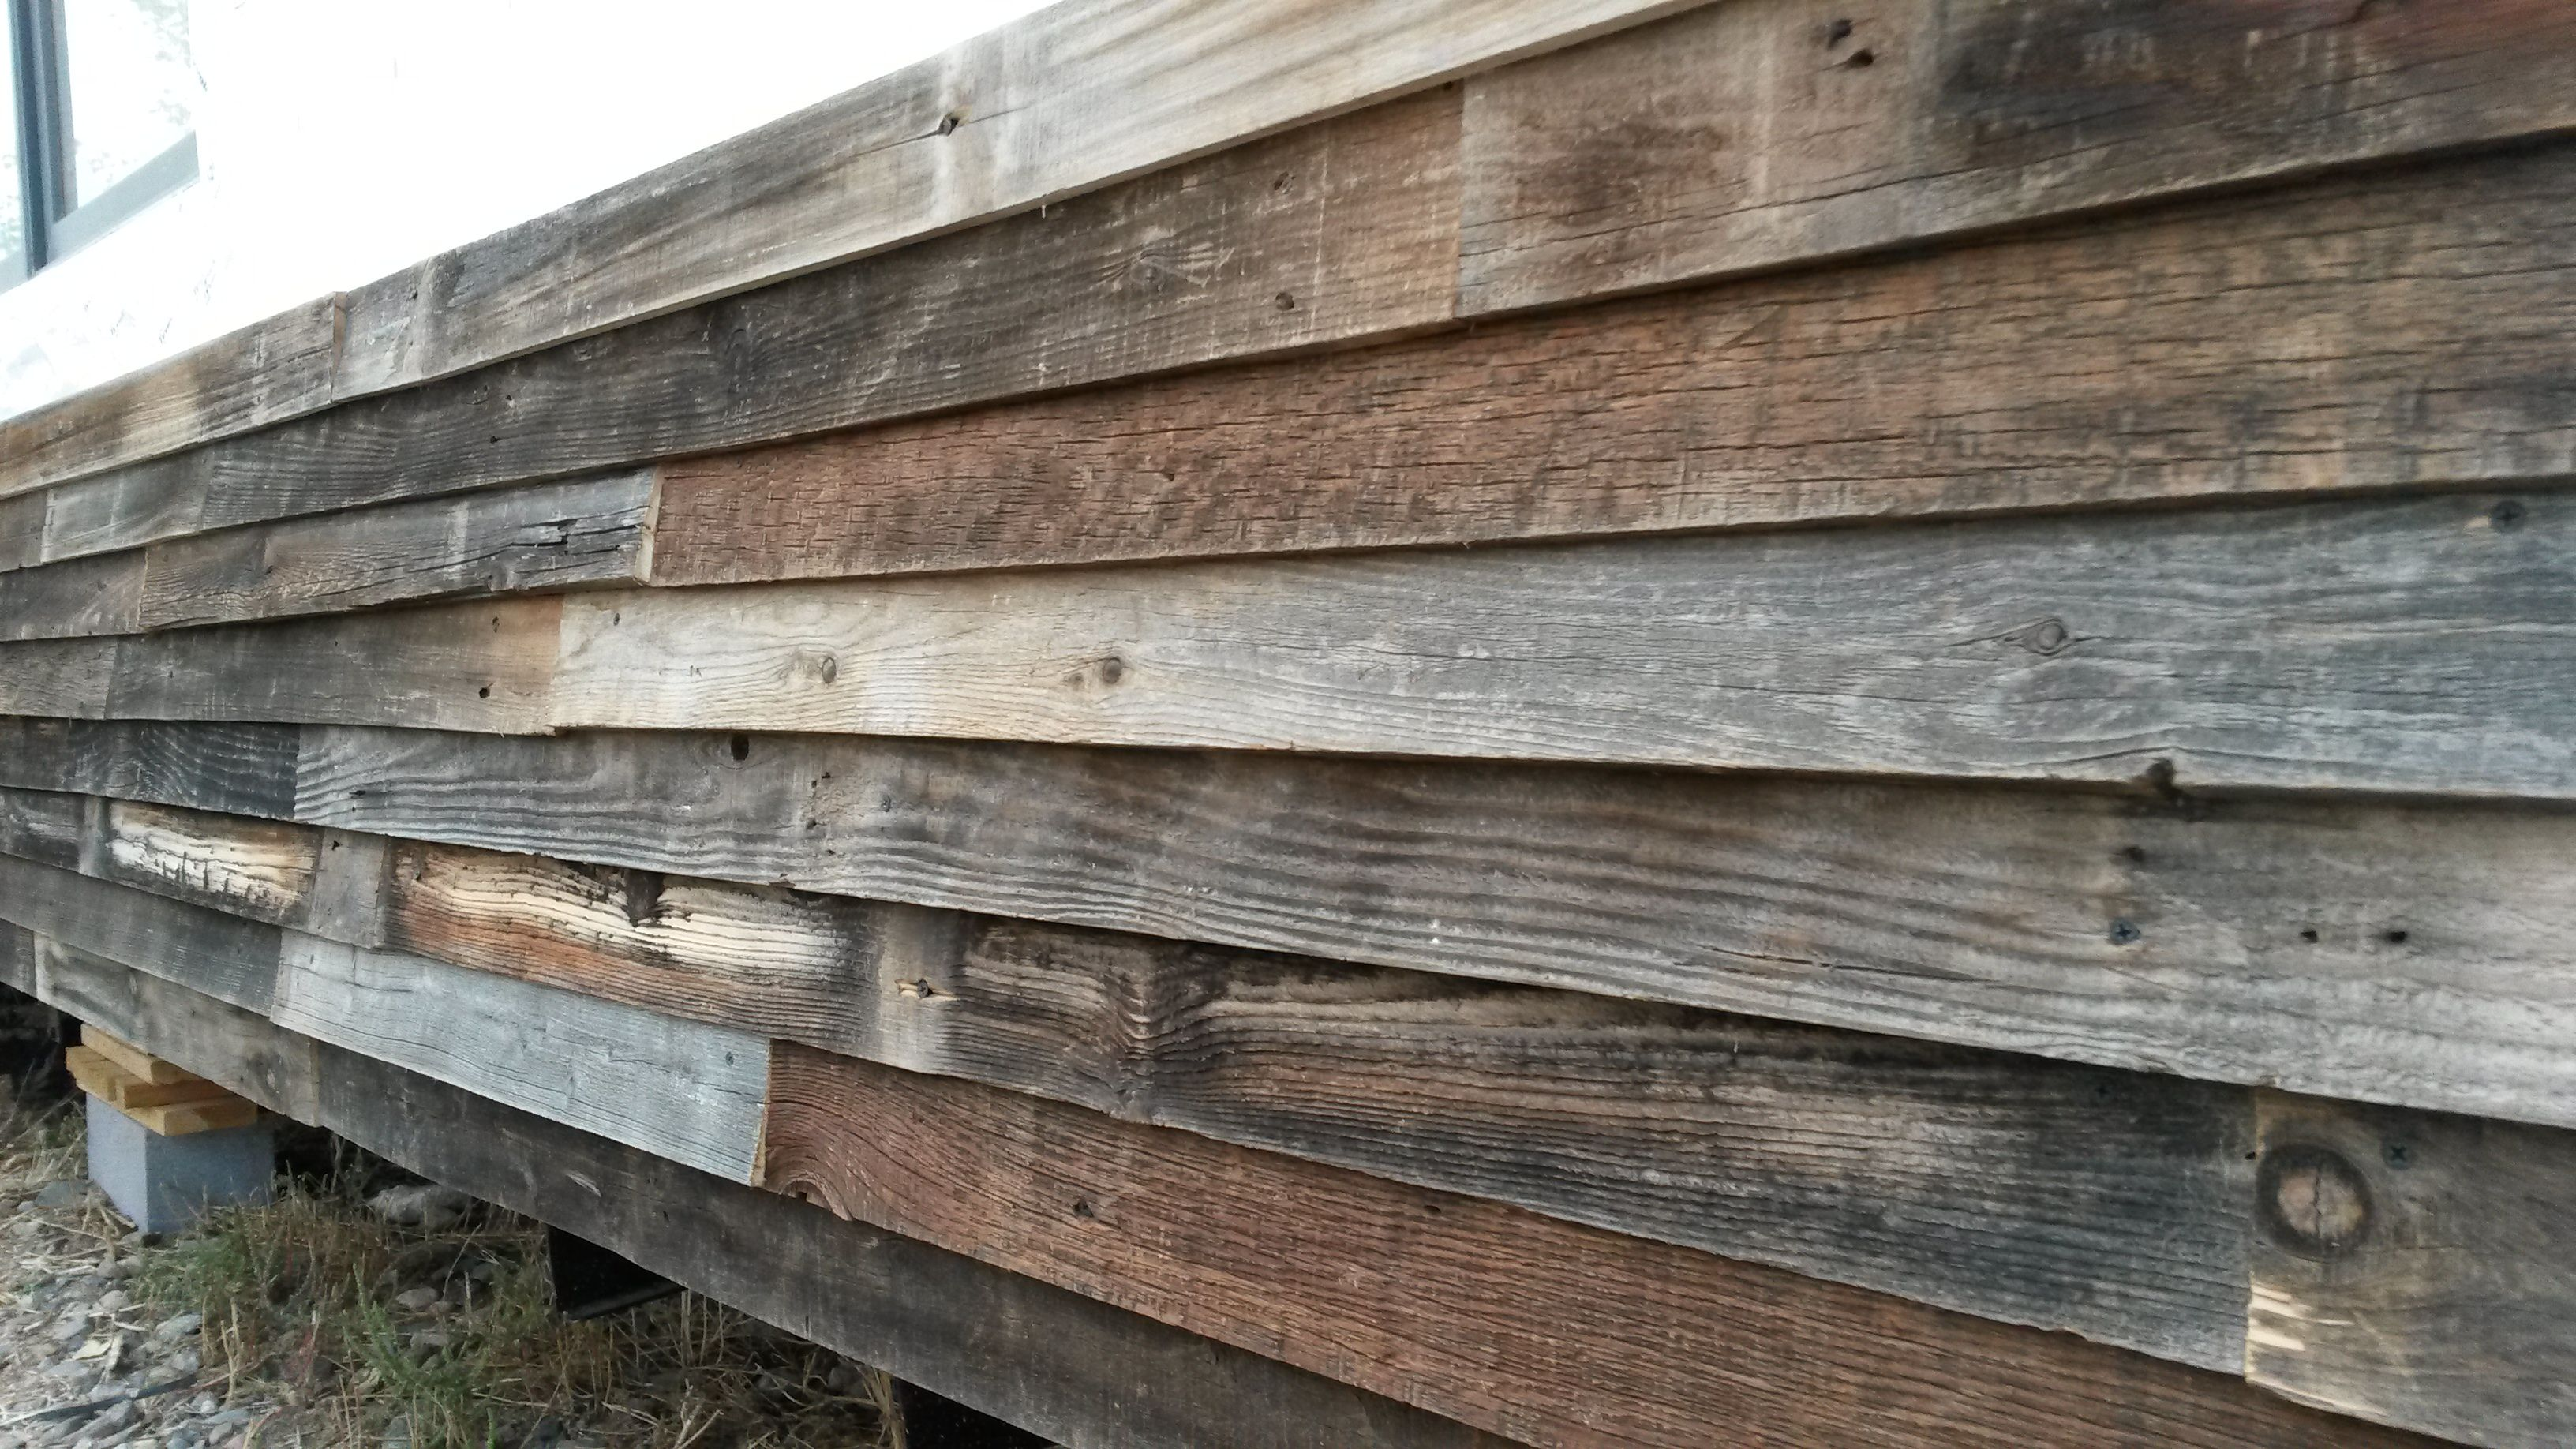 Use Old Fence Boards For Siding As Long As The Surface Below Is Properly Sheathed Old Fence Boards Cedar Fence Boards Old Fences